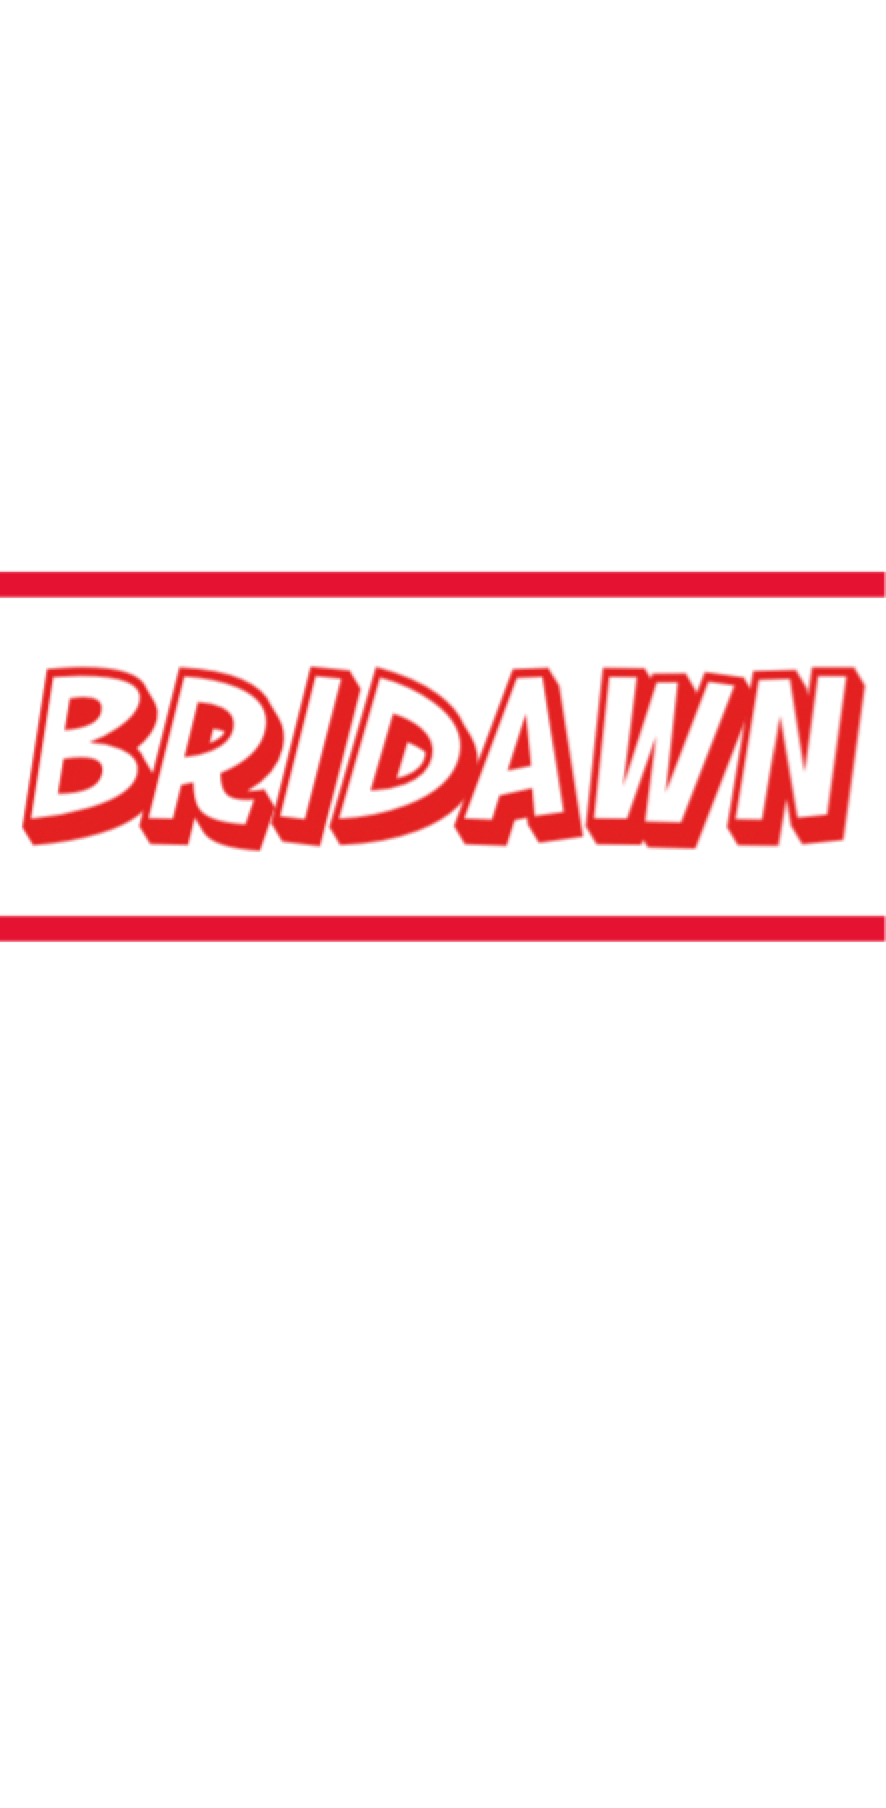 cover Bridawn